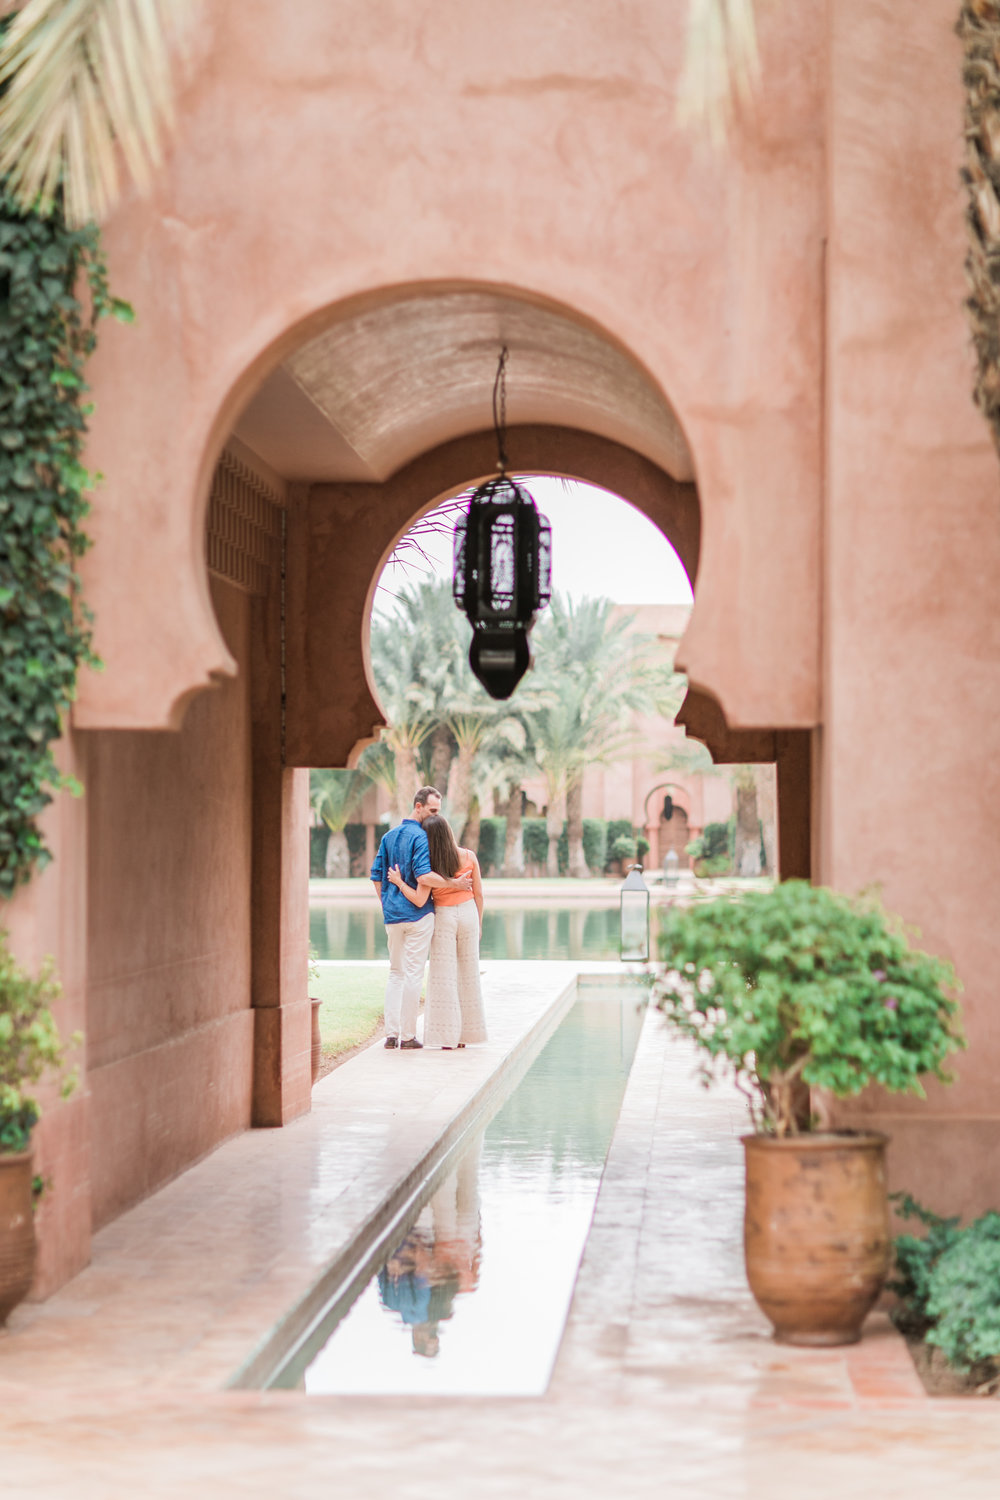 mariarao_engagement_marrakech (118 de 1).JPG